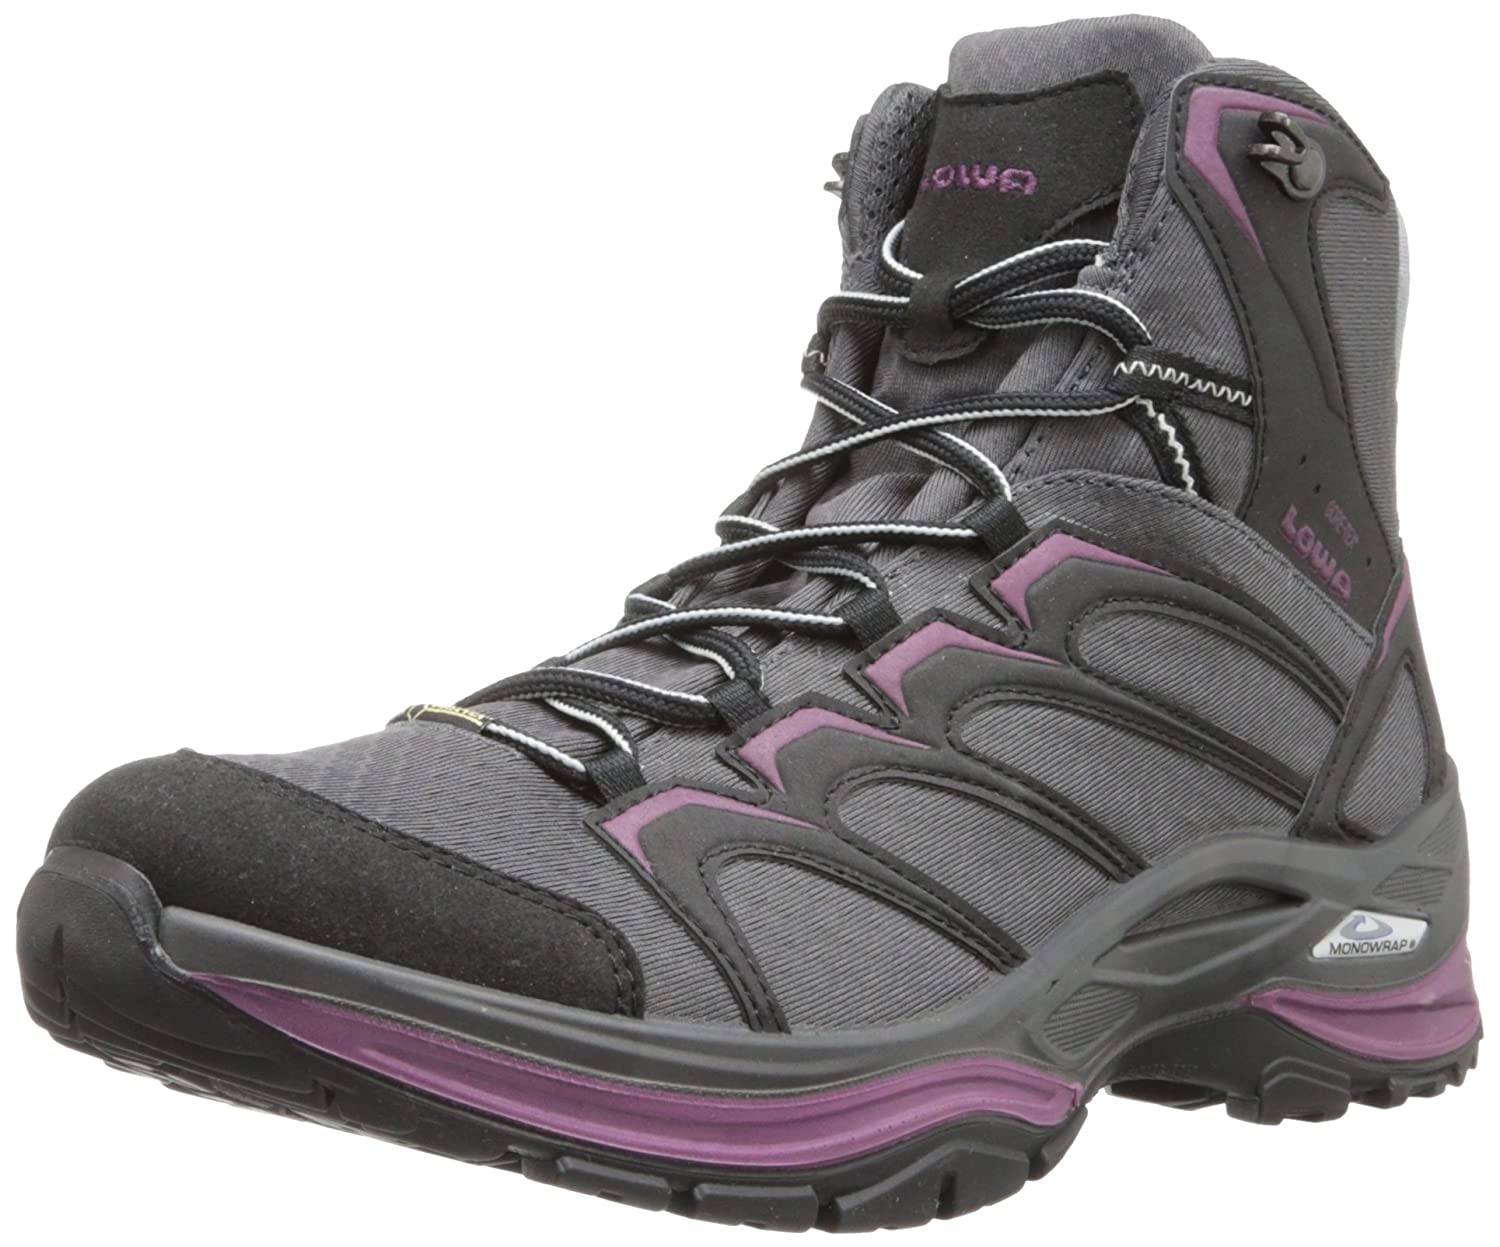 Amazon.com | Lowa Women's Innox Goretex Mid Hiking Boot, Anthracite/Prune,  9.5 M US | Hiking Boots